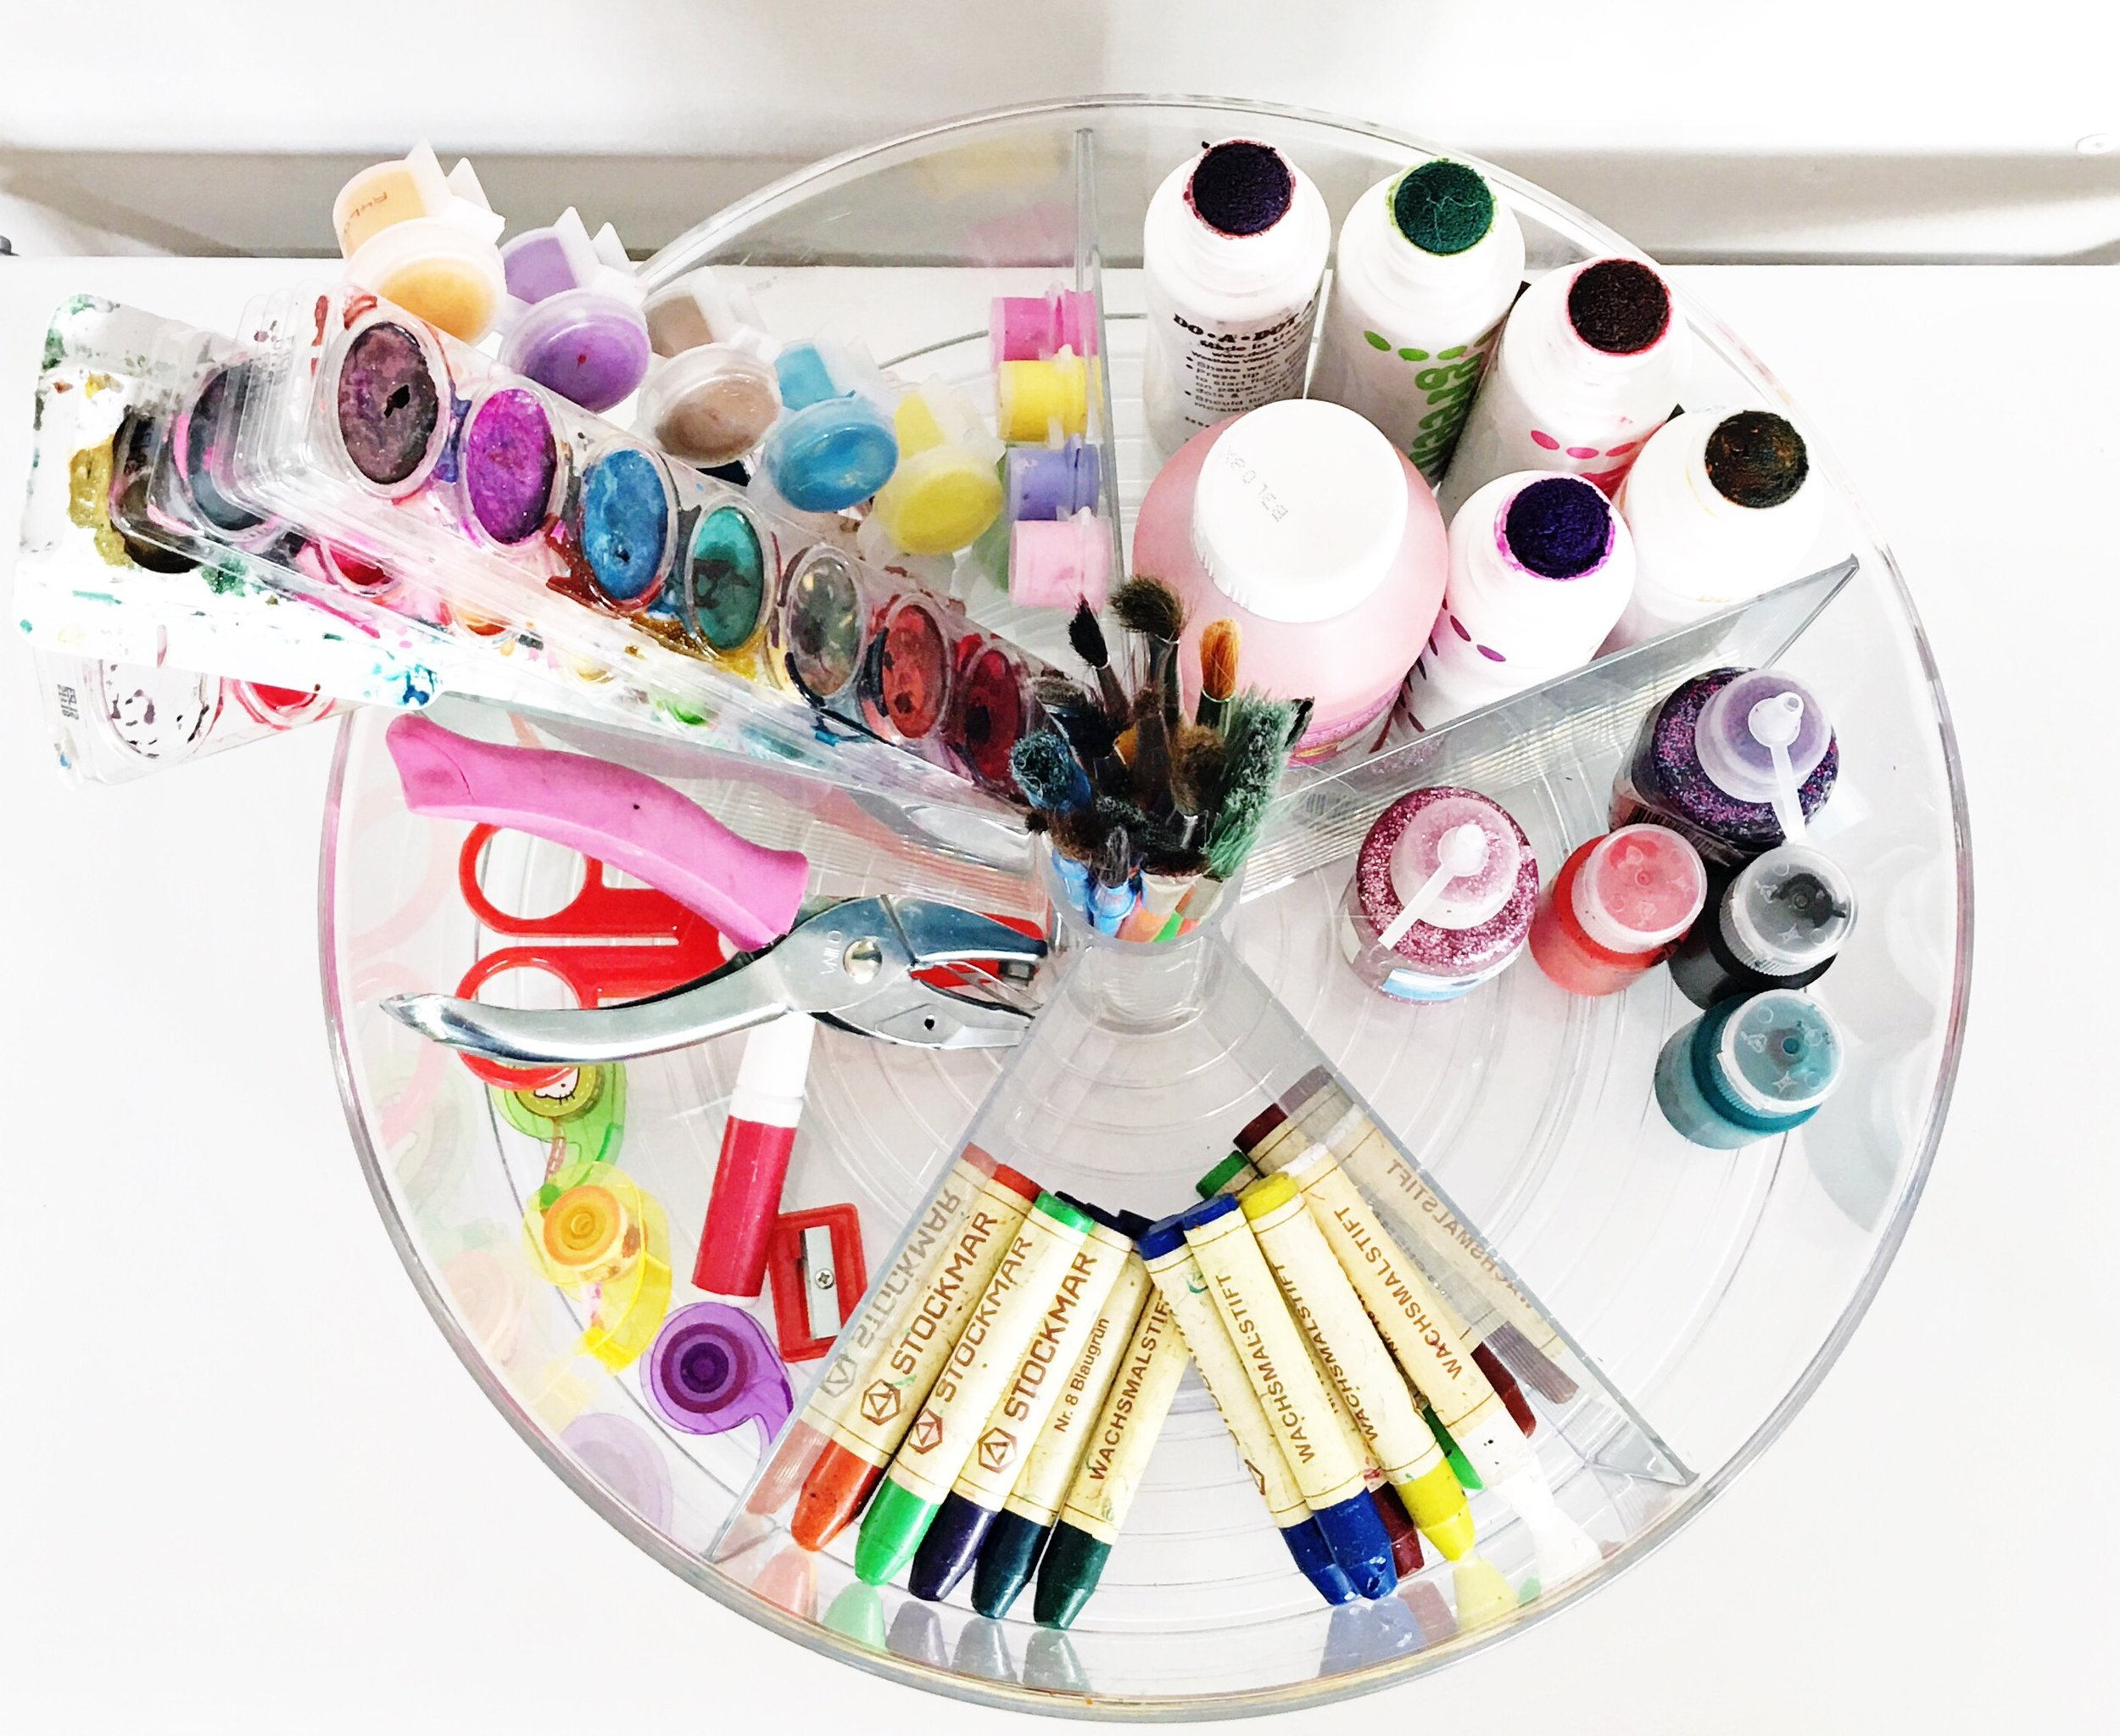 Shelfie_Kids_Organized Paint_Lazy Susan